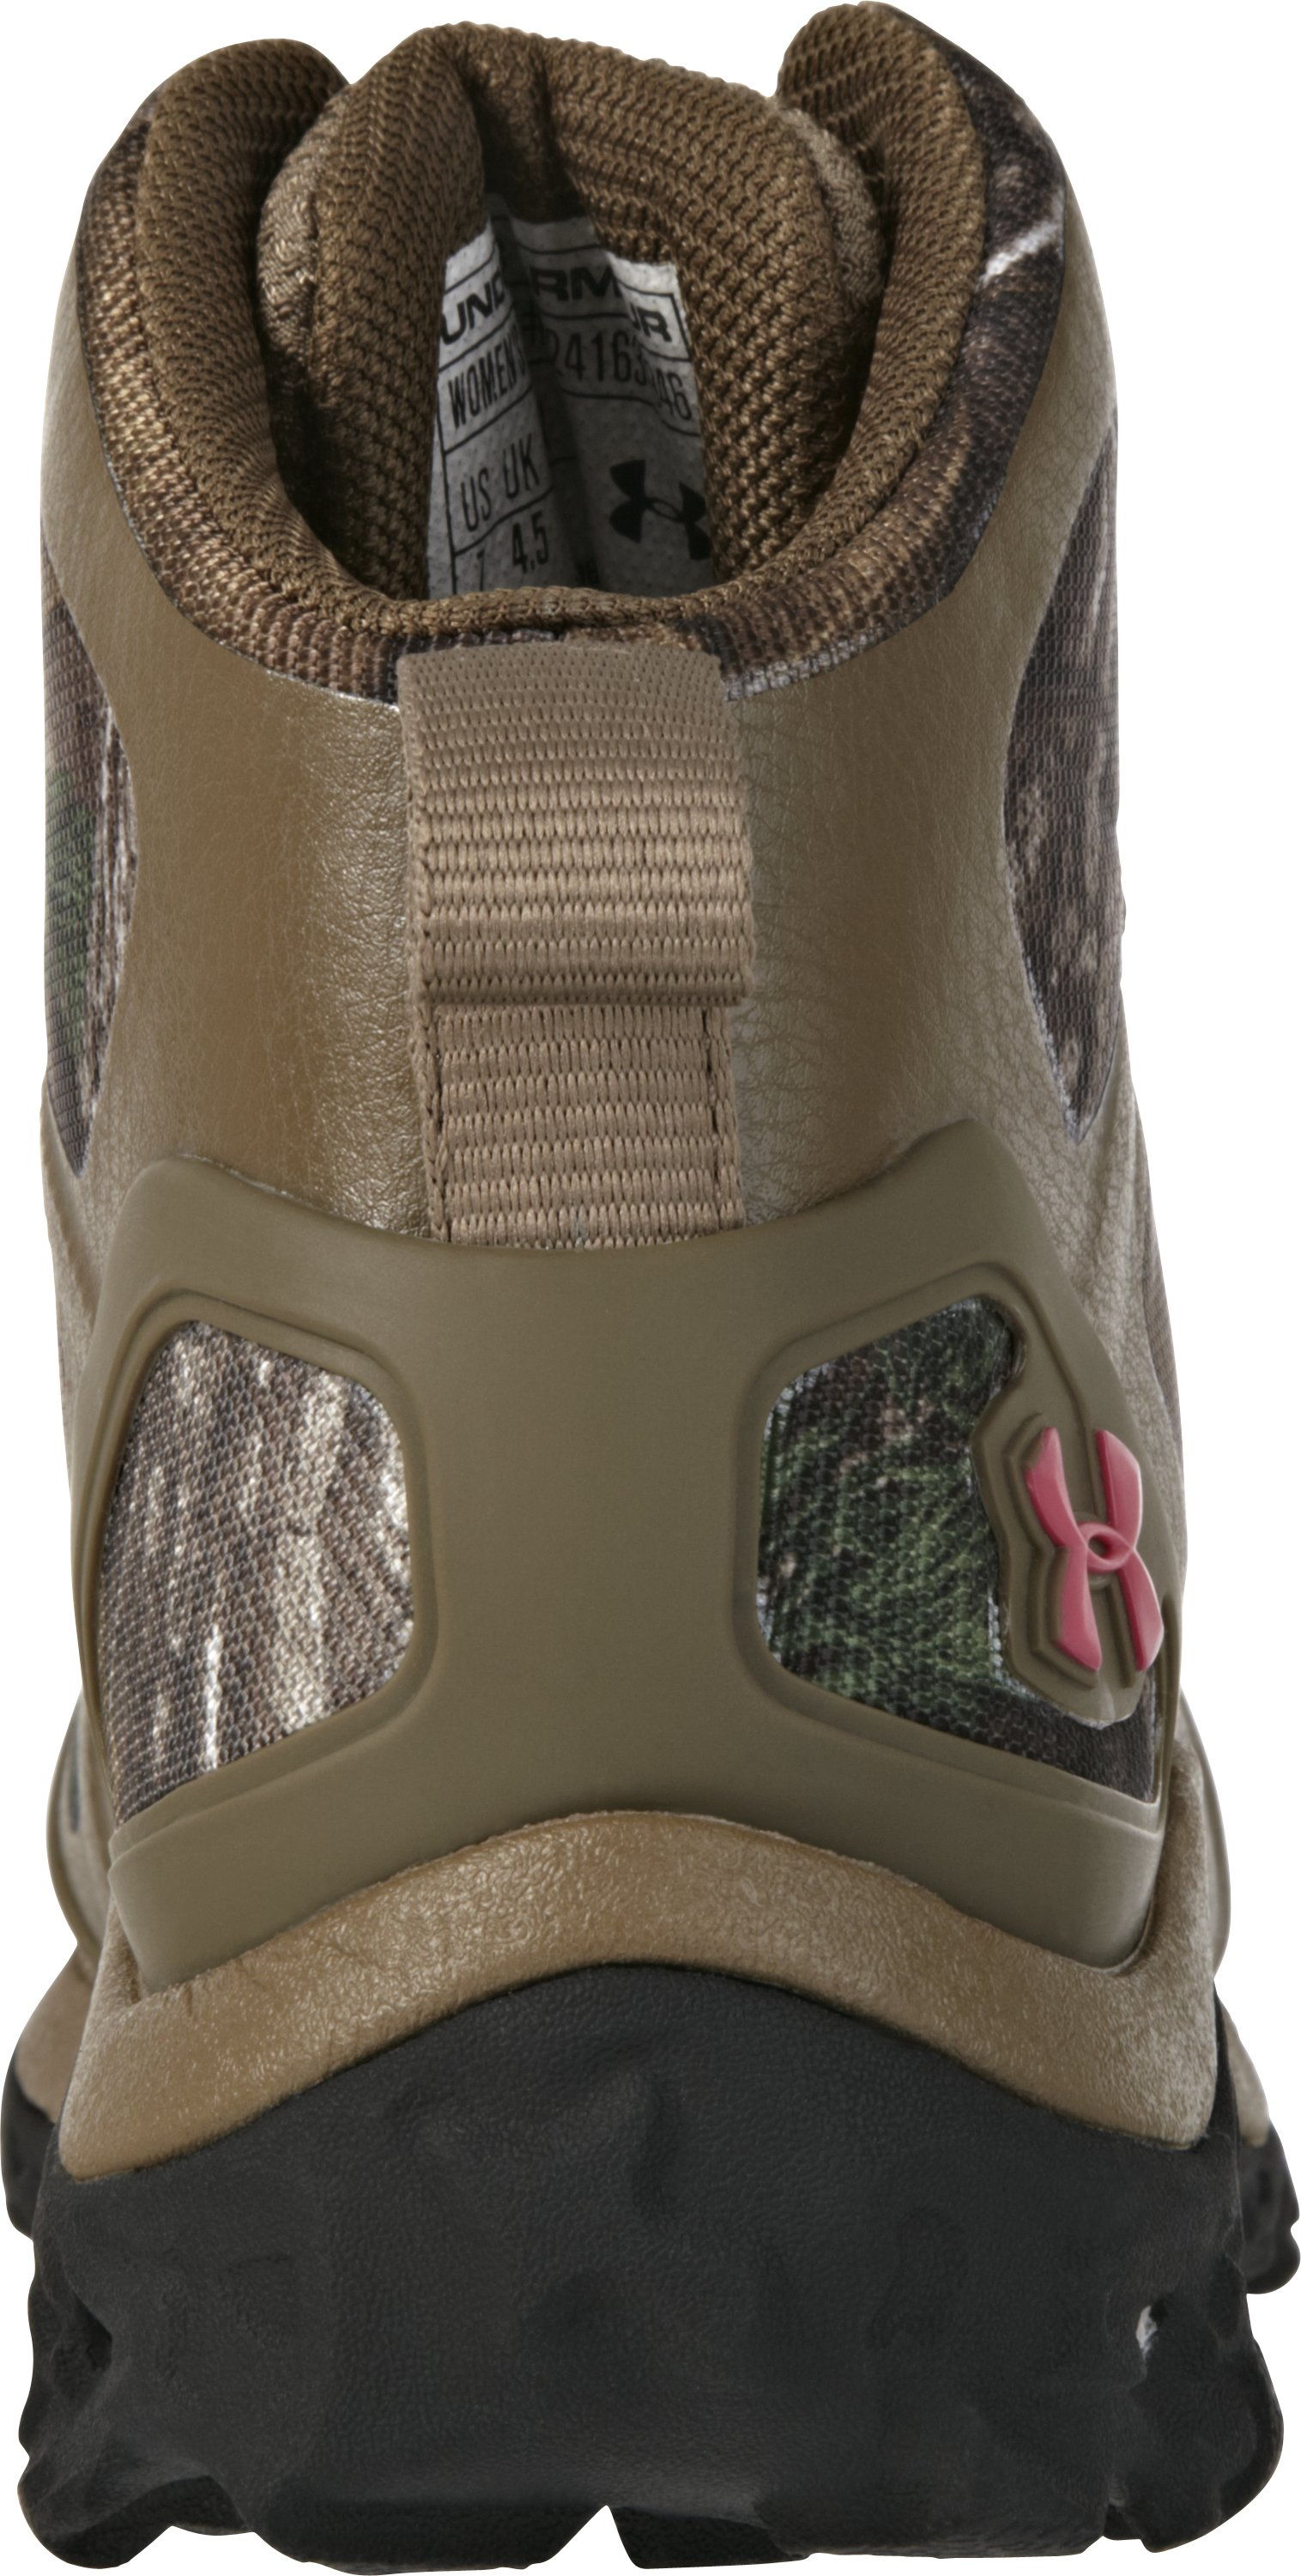 Women's UA Speed Freek Chaos Hunting Boot, REALTREE AP-XTRA